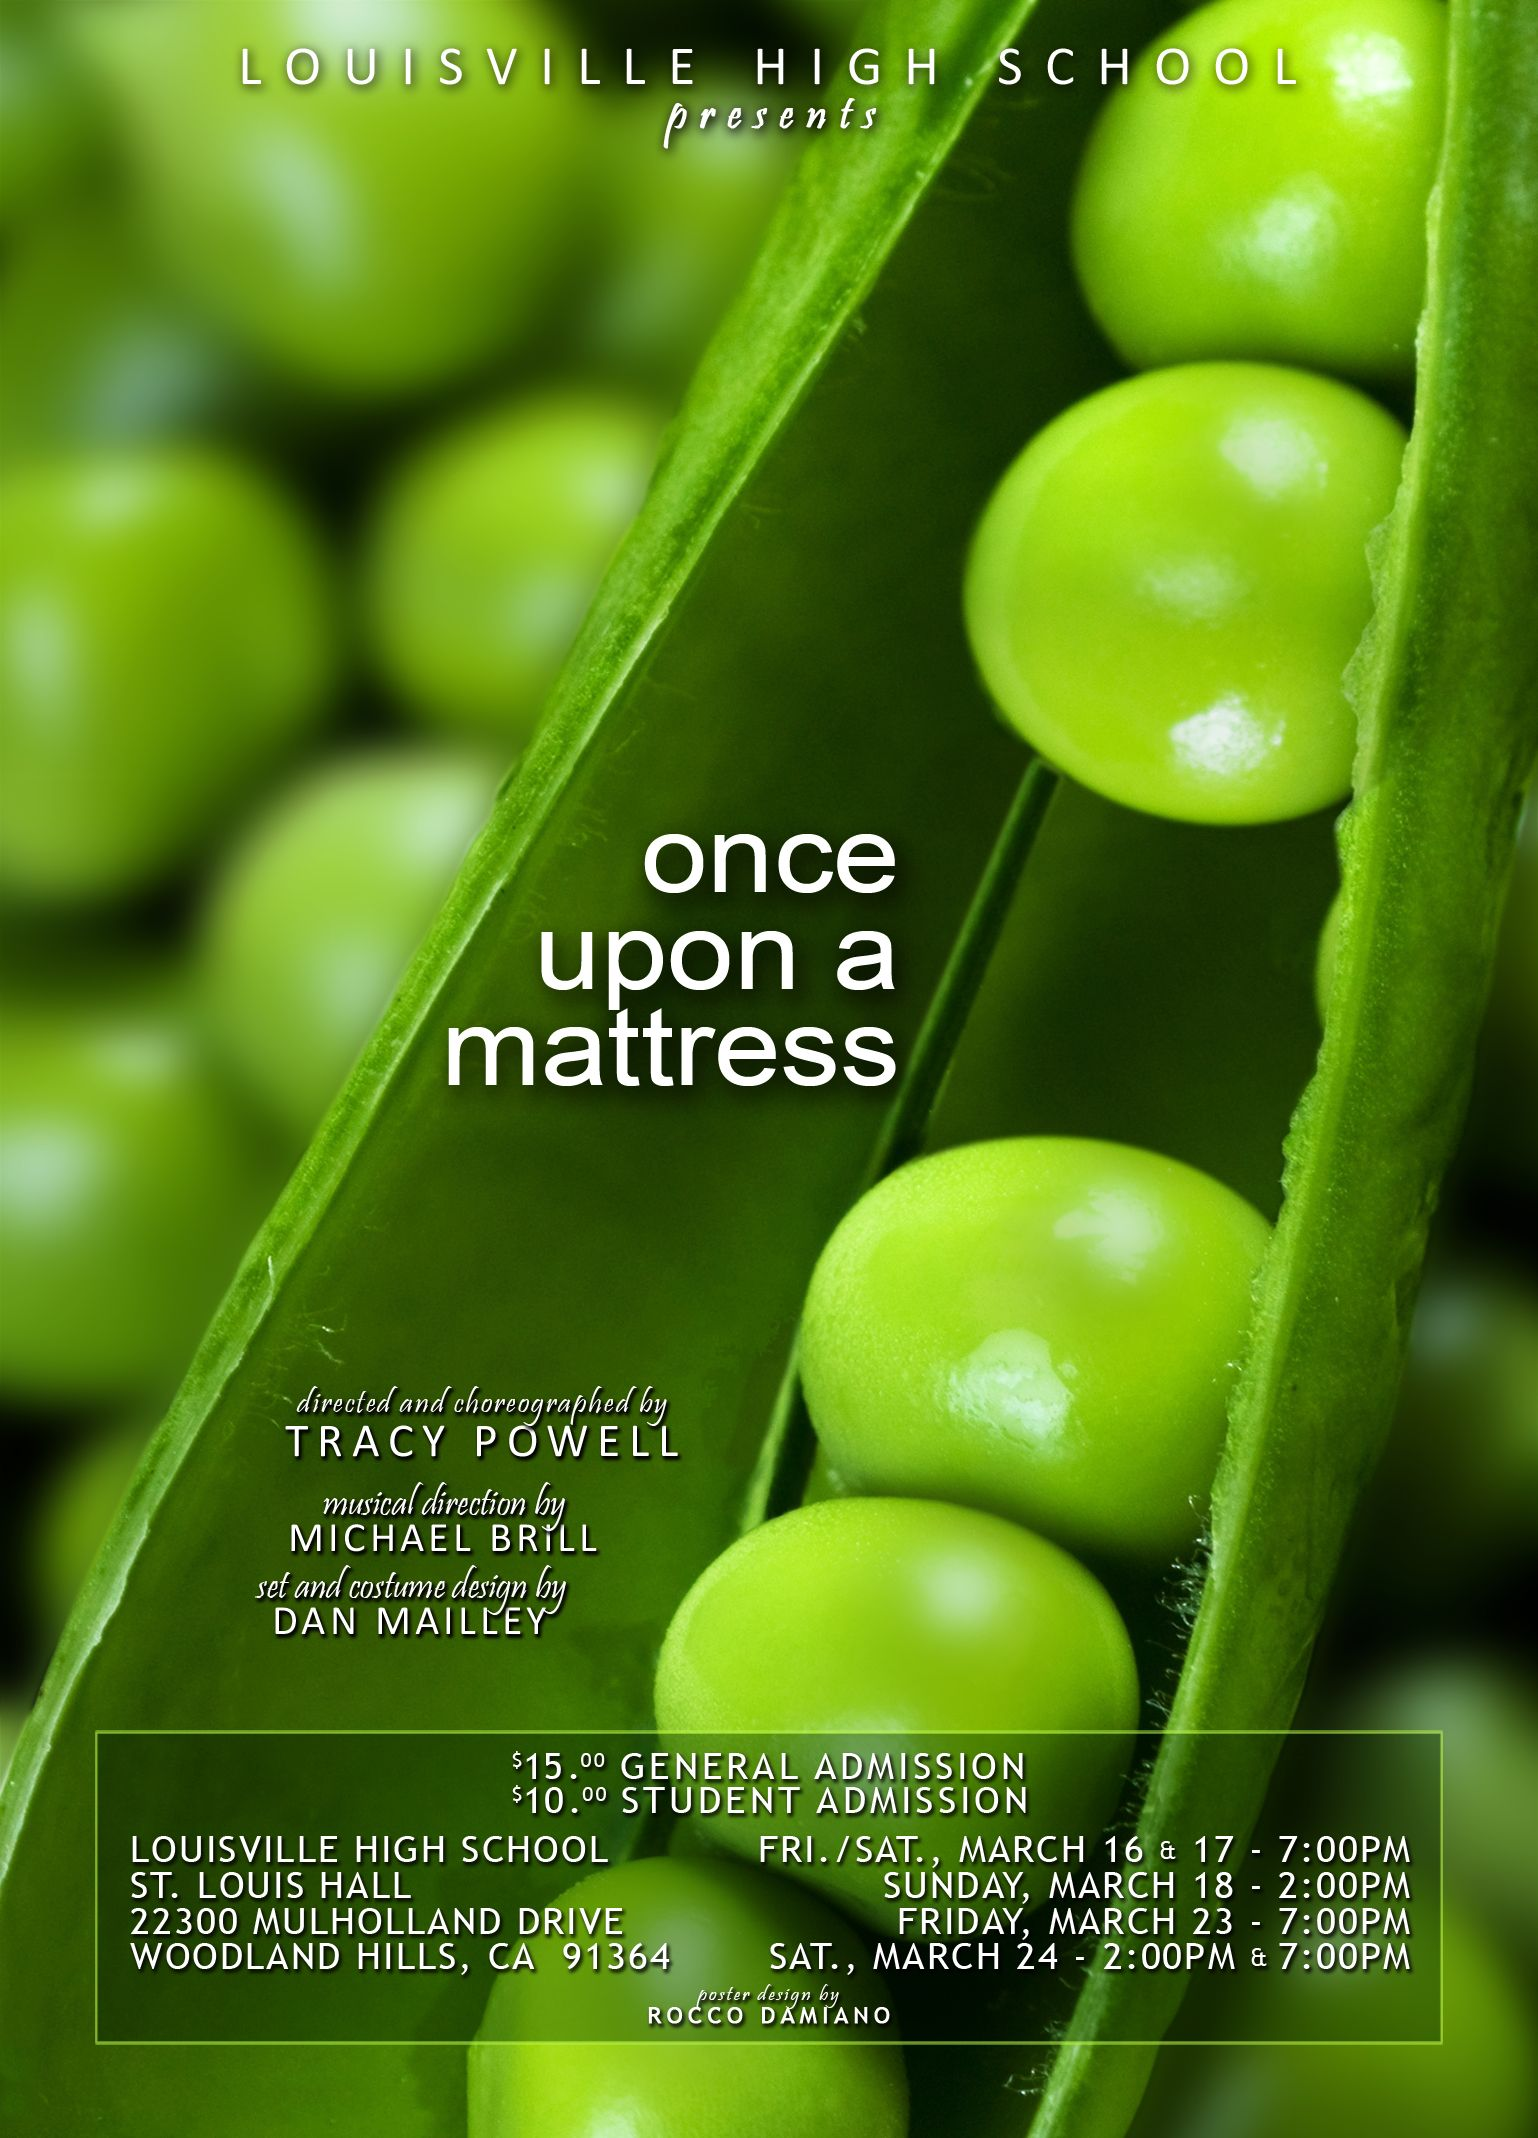 once upon a mattress broadway poster. Once Upon A Mattress Broadway Poster